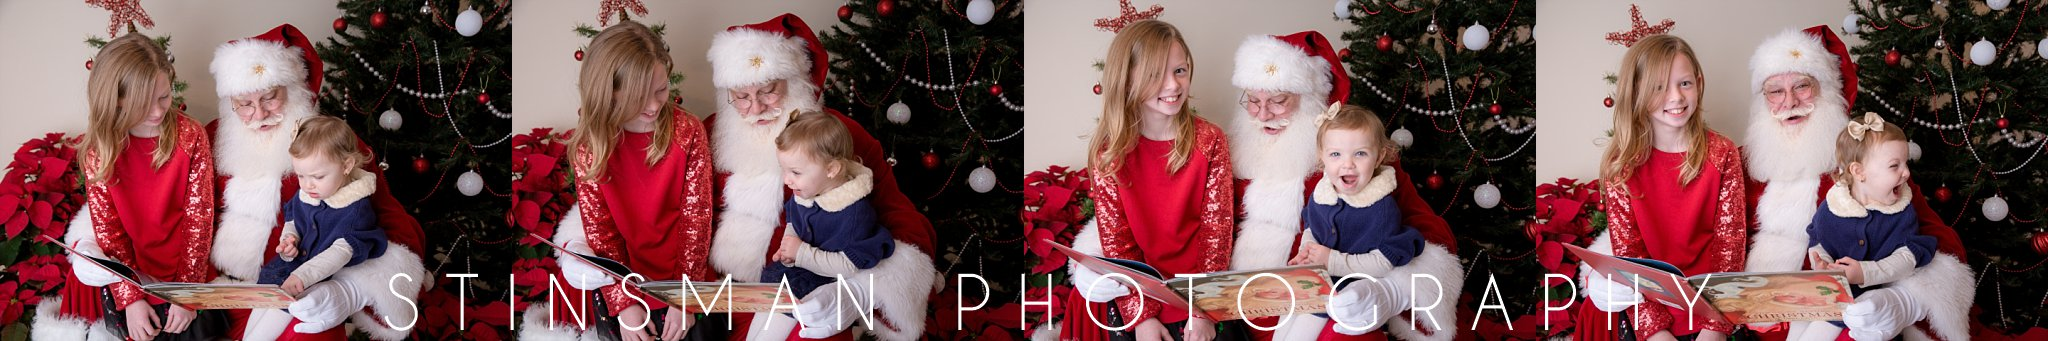 santa reading a short to sisters in south jersey photography studio